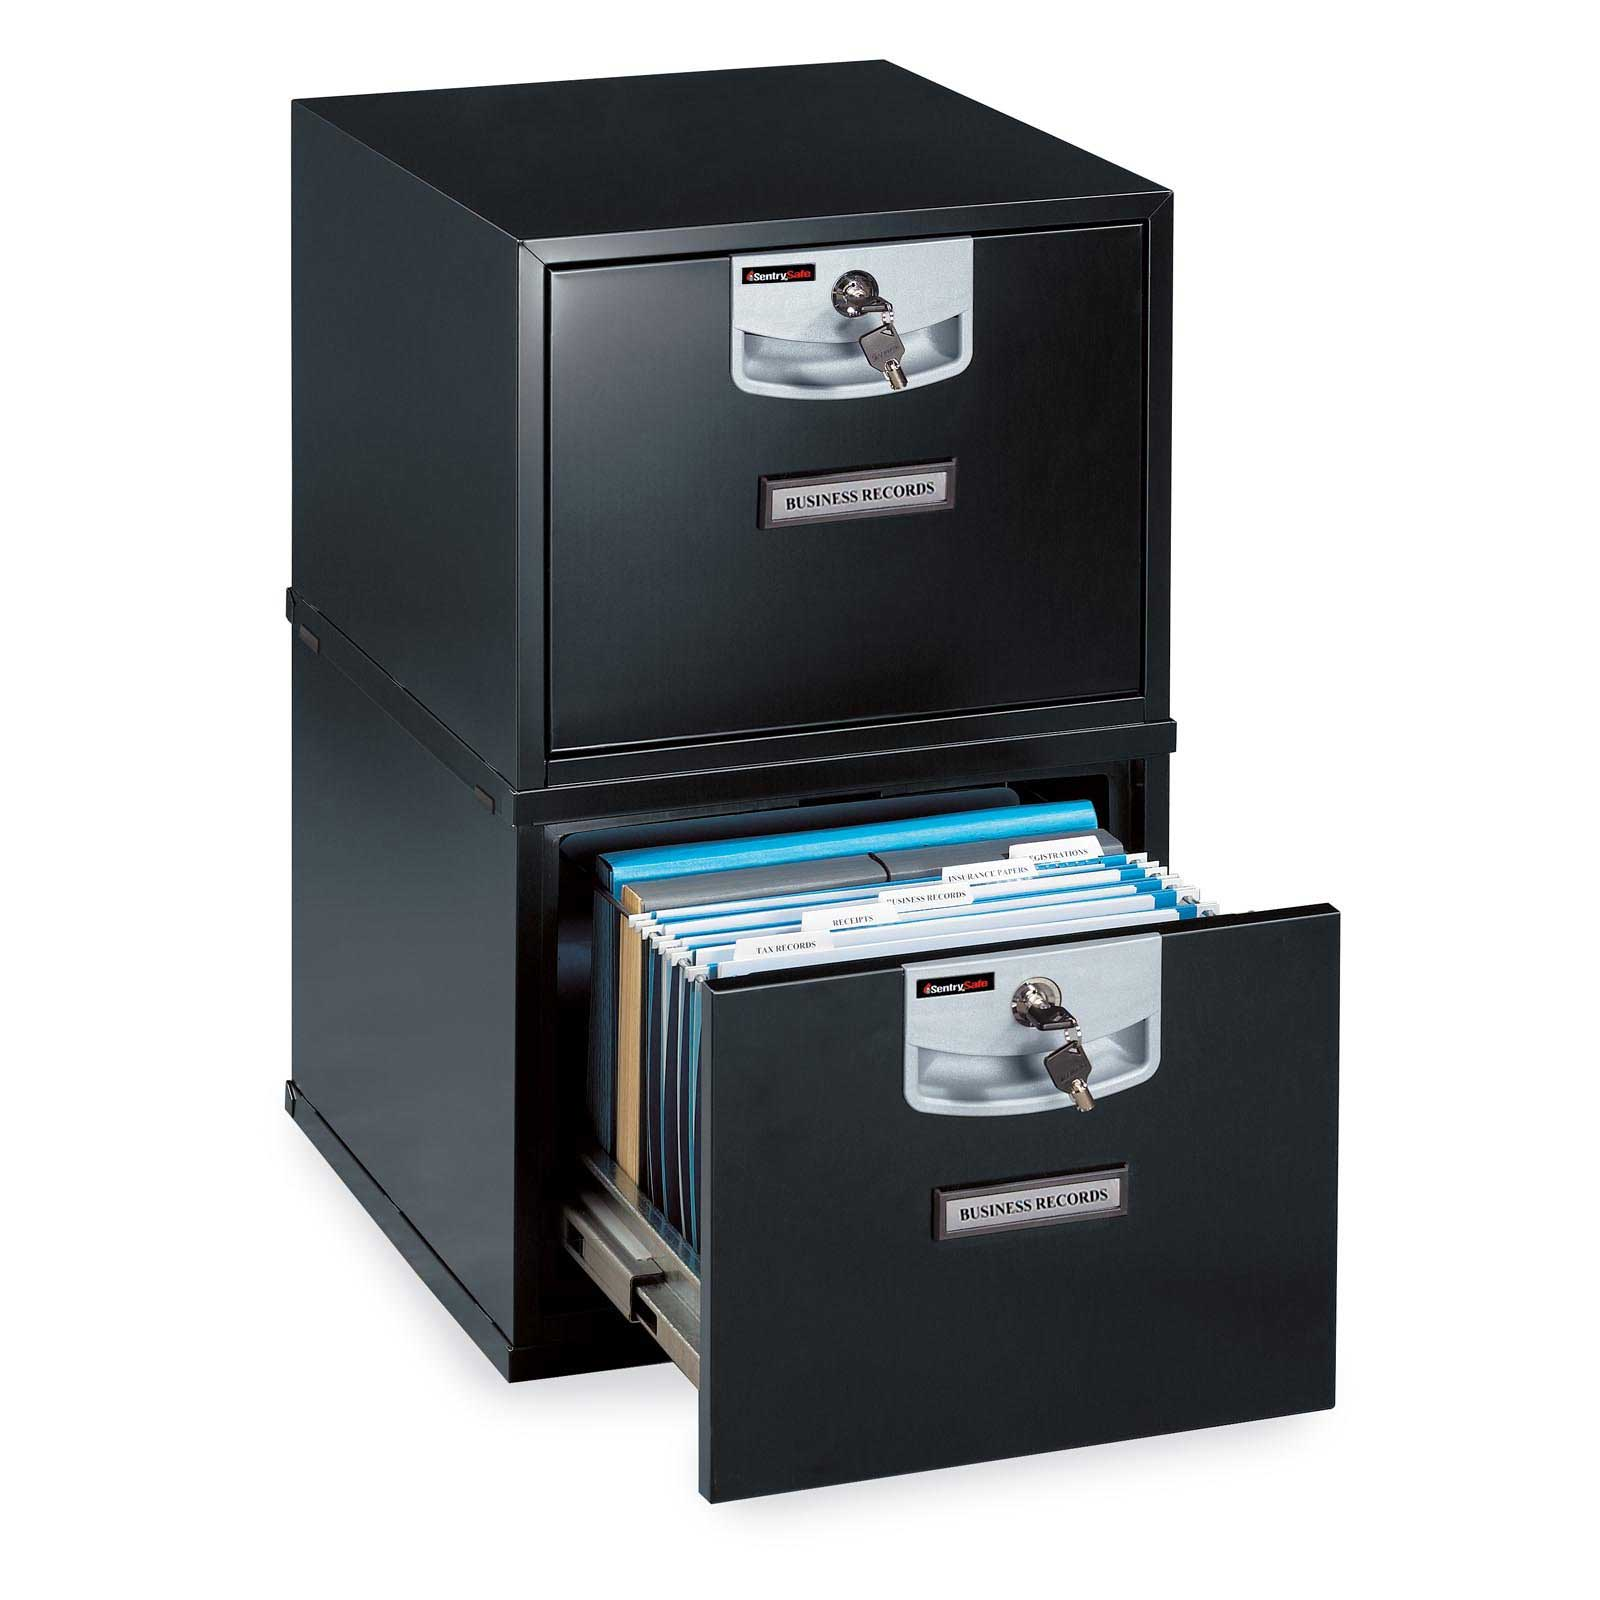 SentrySafe U2101 Stackable Fireproof Filing Cabinet for Professional